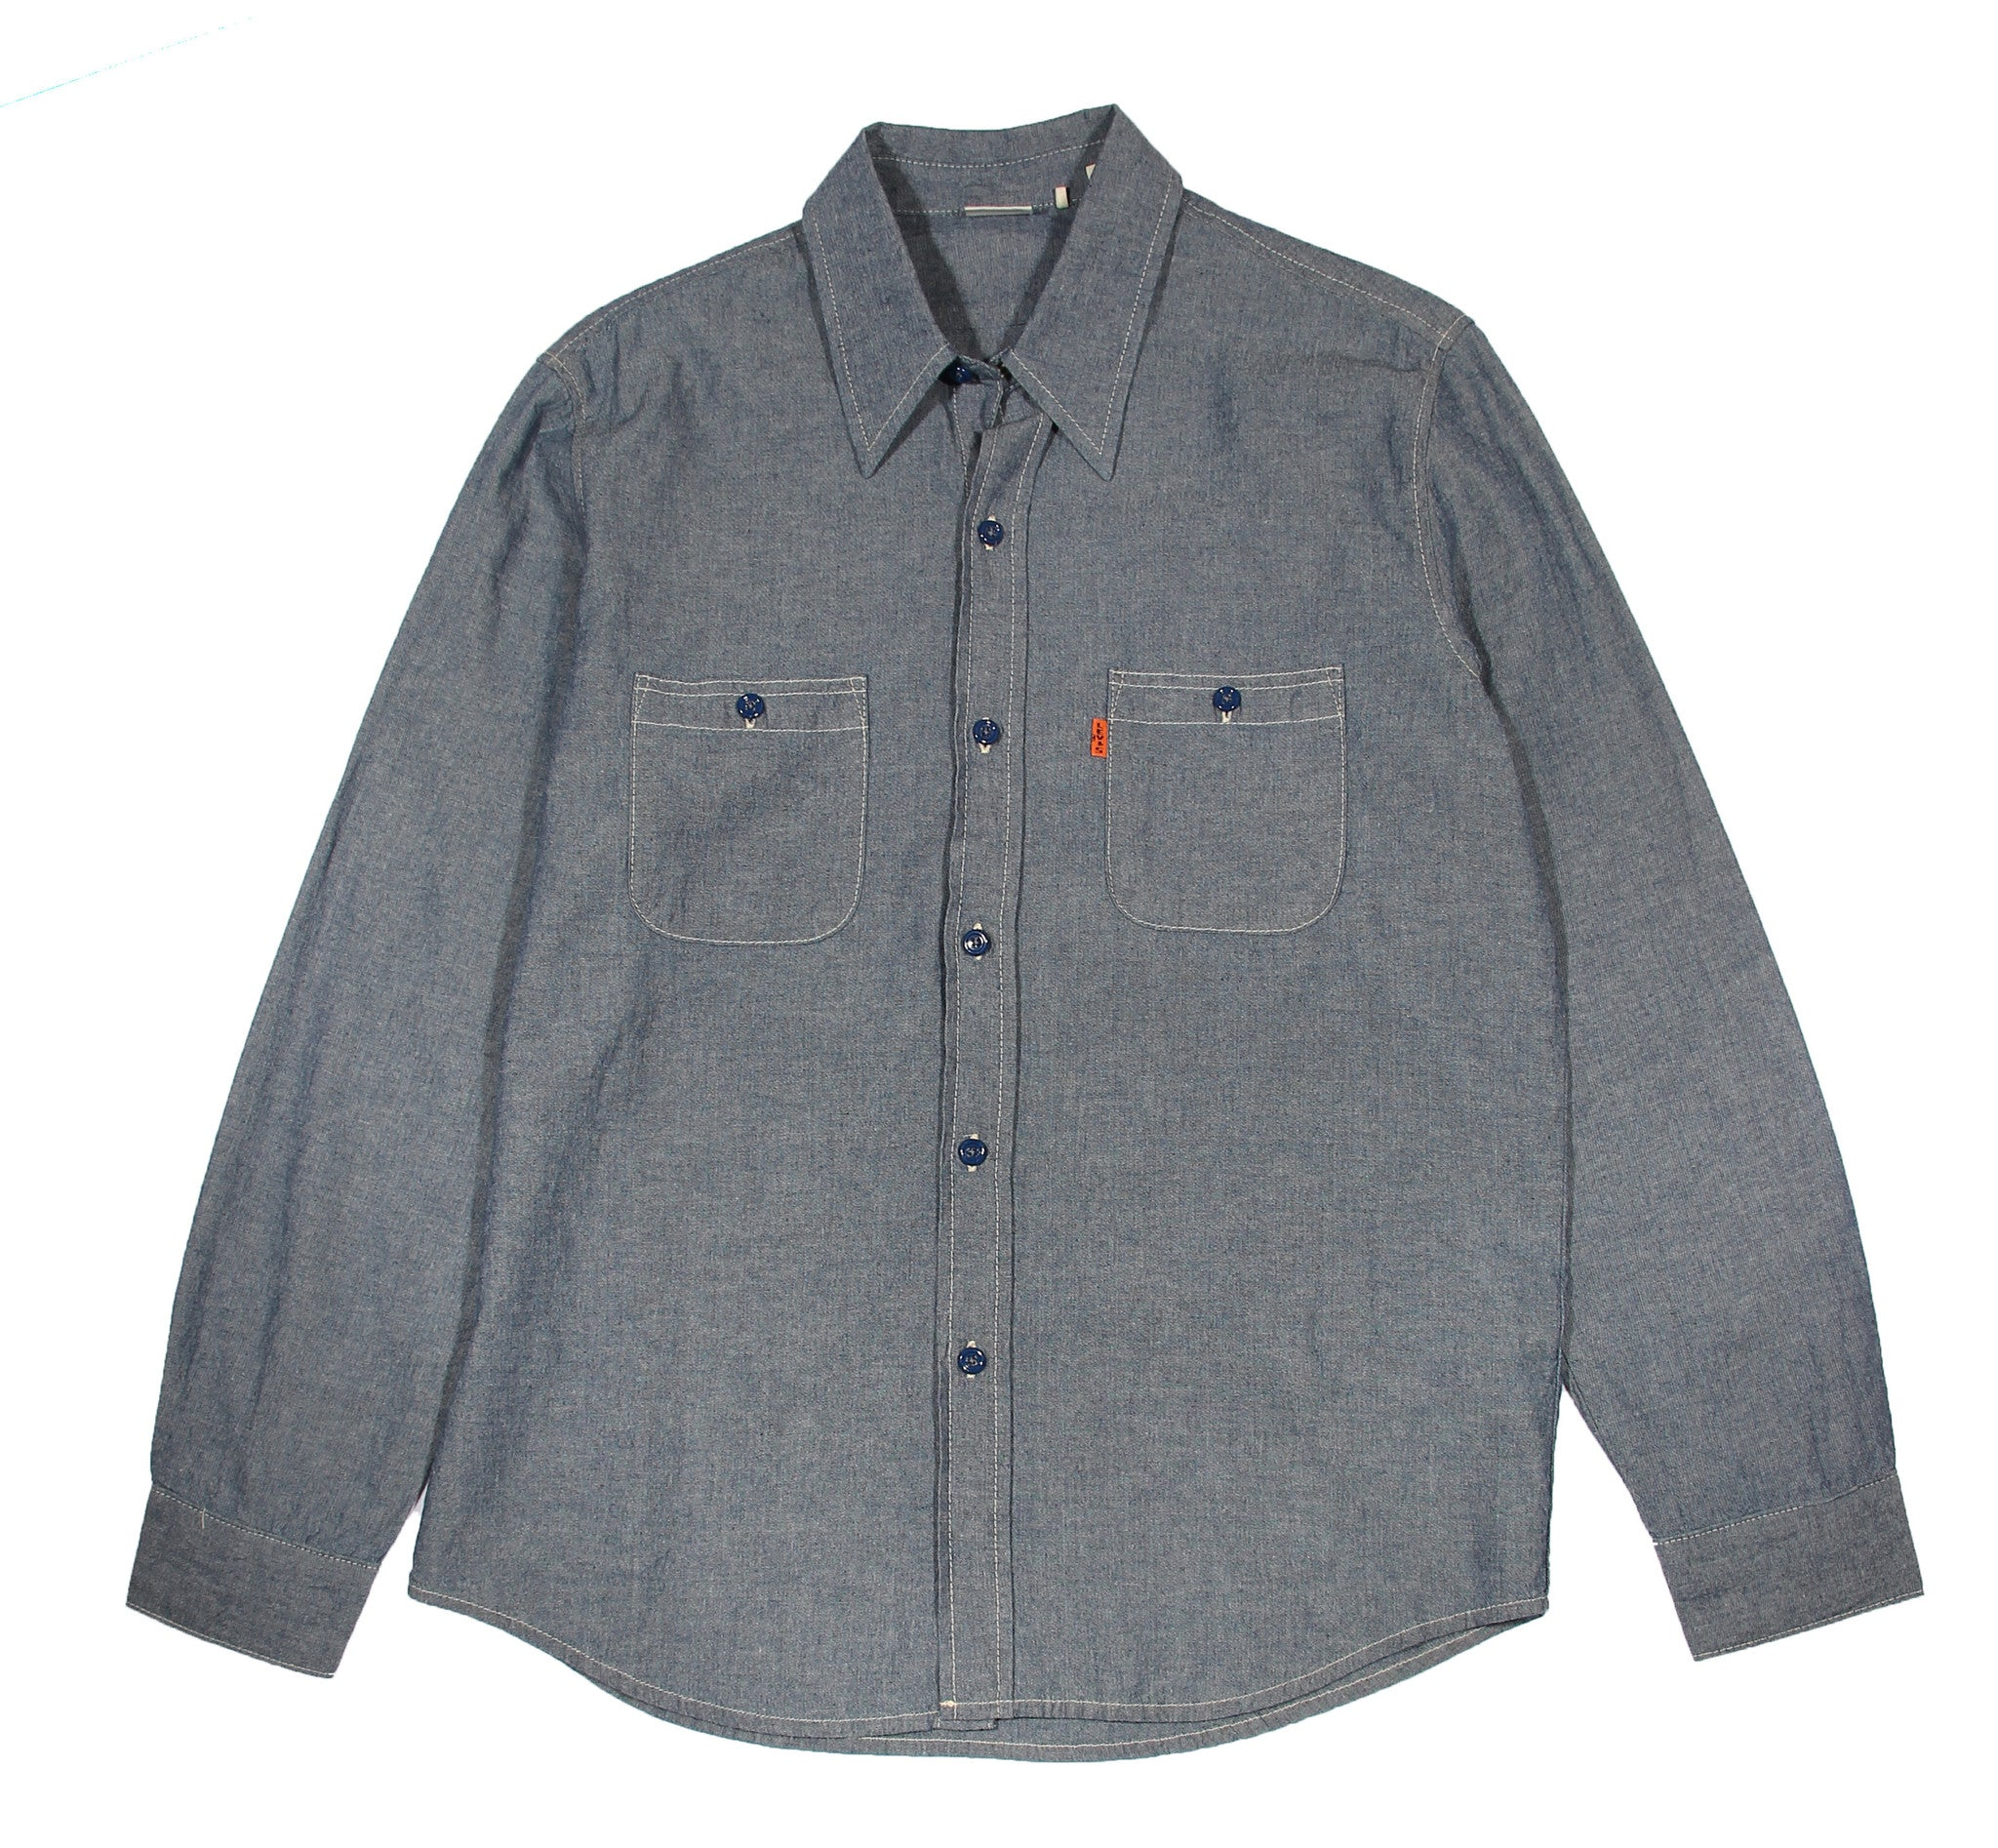 LEVIS'S VINTAGE 1960s CHAMBRAY SHIRT - COSMOTOG